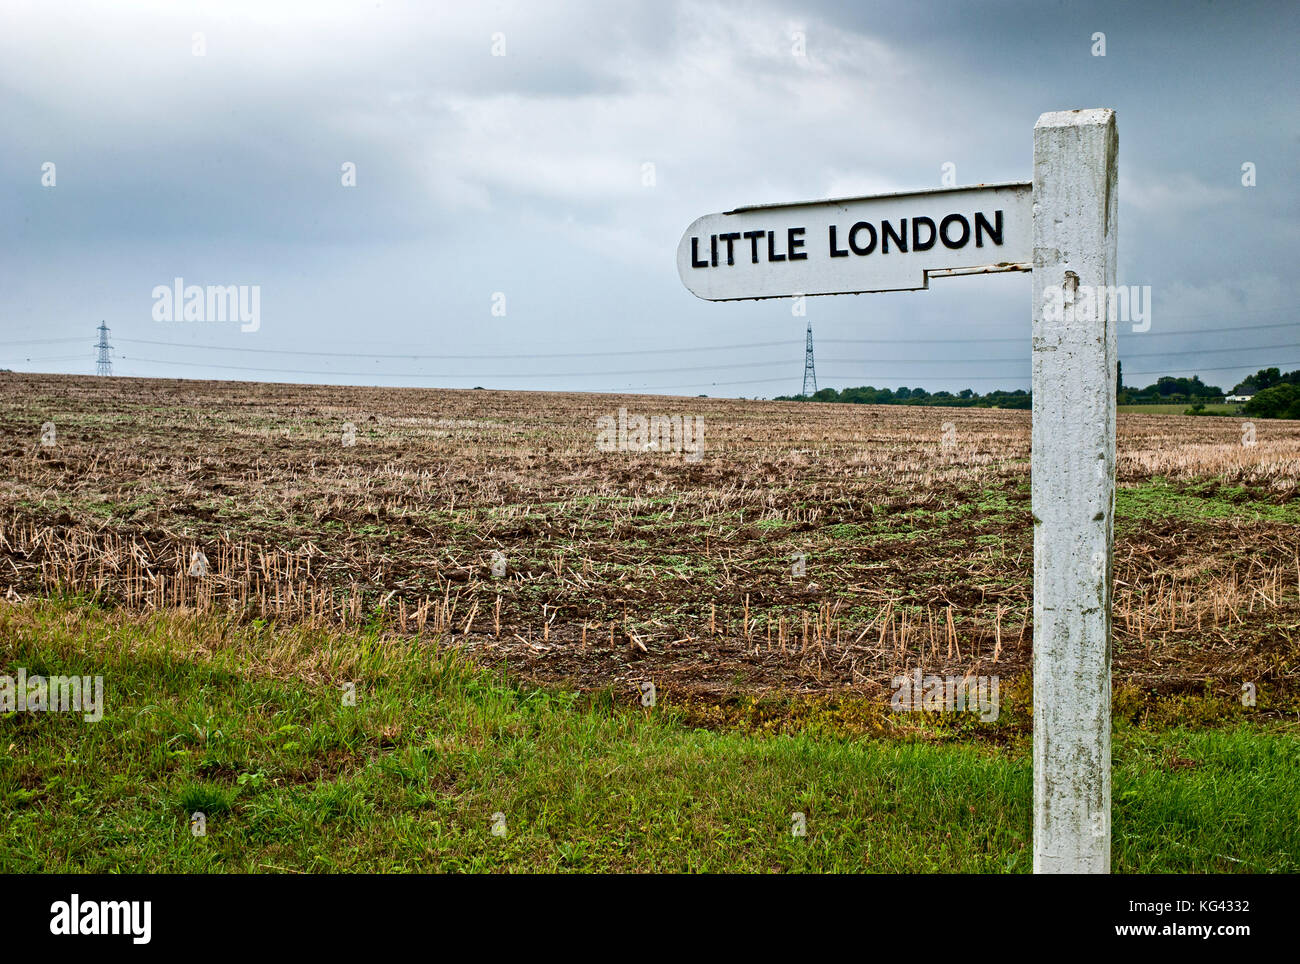 Little London street sign in front of a recently harvested field somewhere in the home counties English countryside - Stock Image